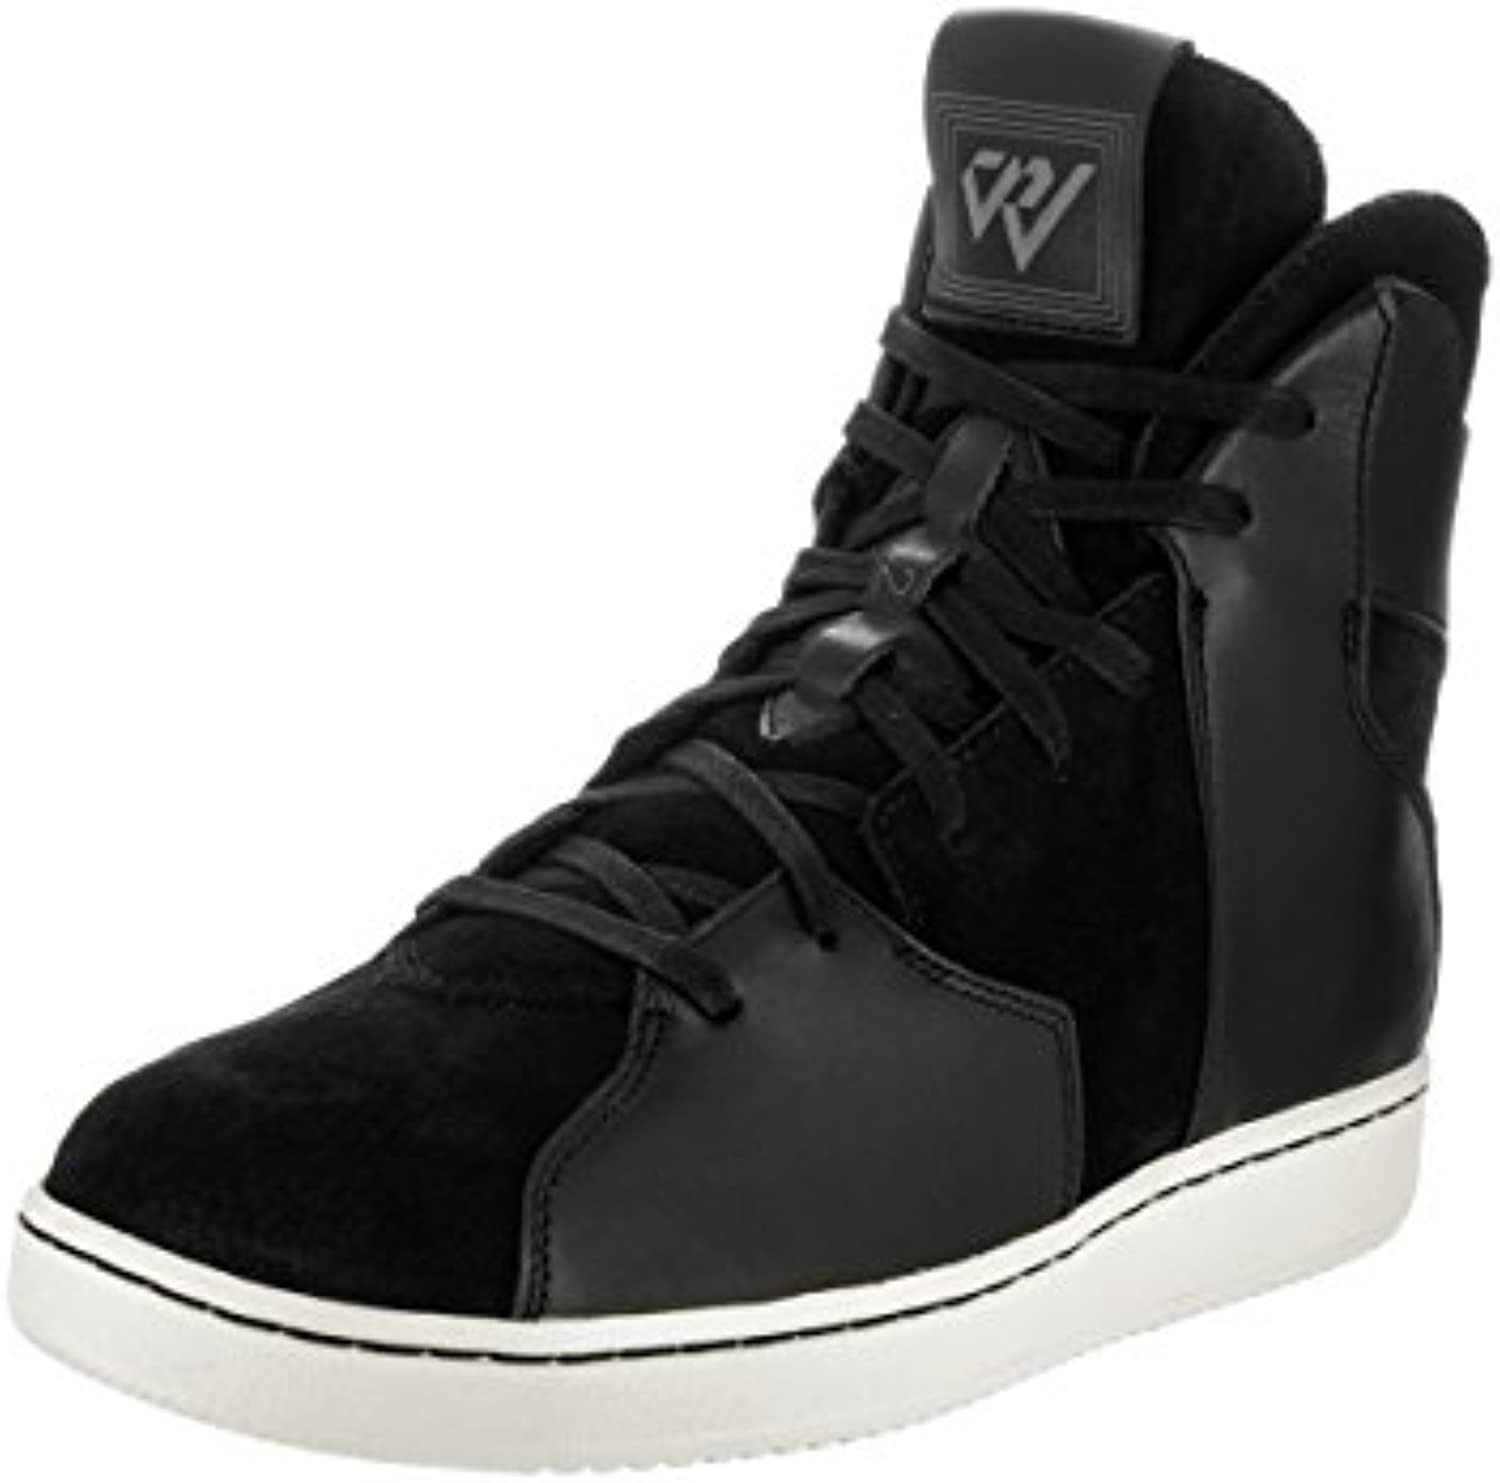 Mr/Ms NIKE 854563-004, Men's Sneakers service Wholesale Wholesale service trade Immediate delivery 0c7f0a